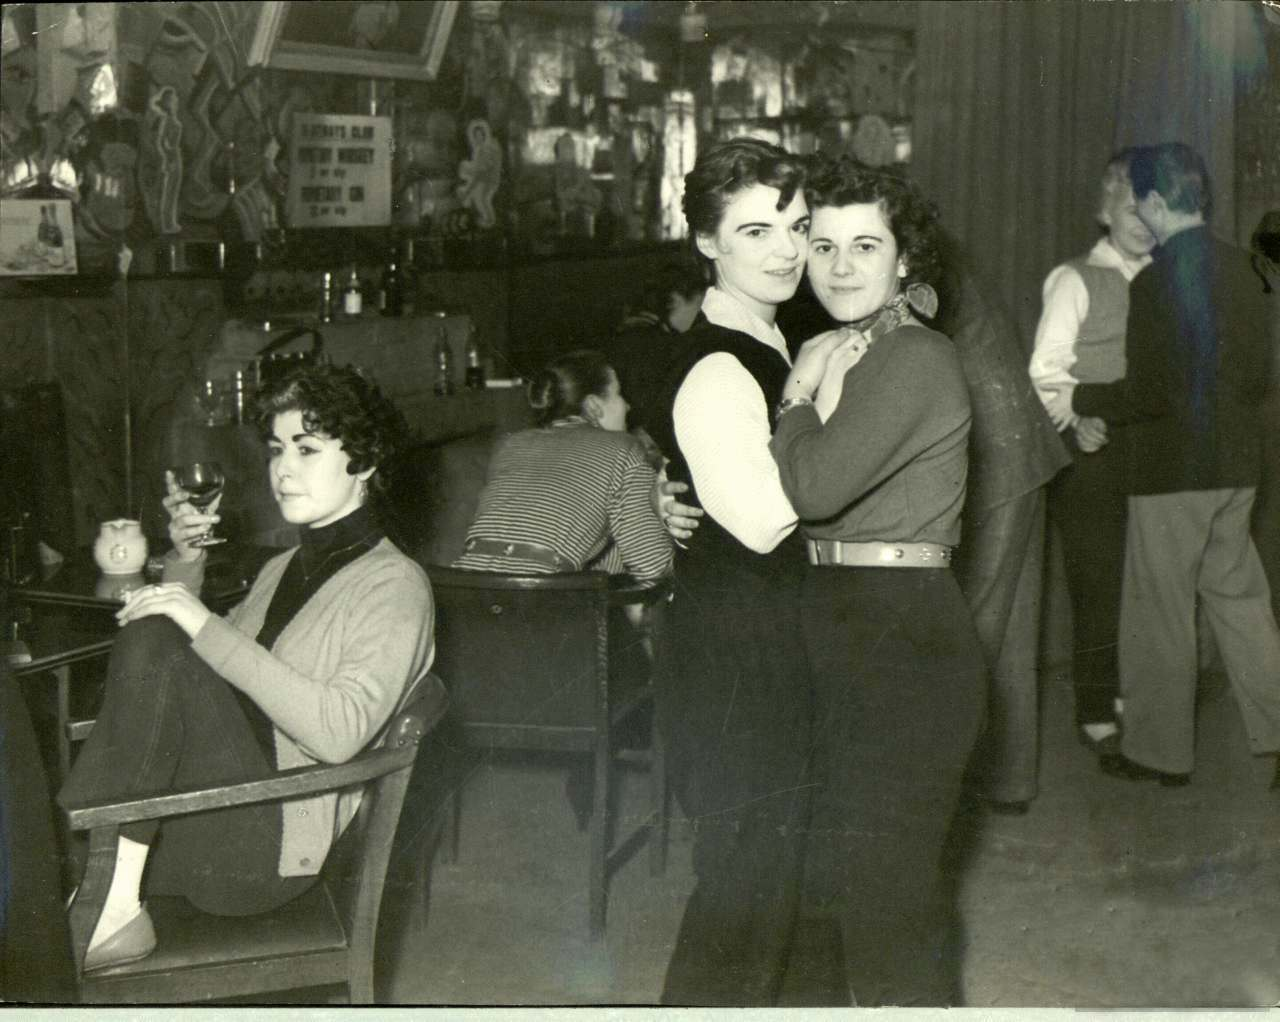 The Gateways Club in Chelsea c.1953.